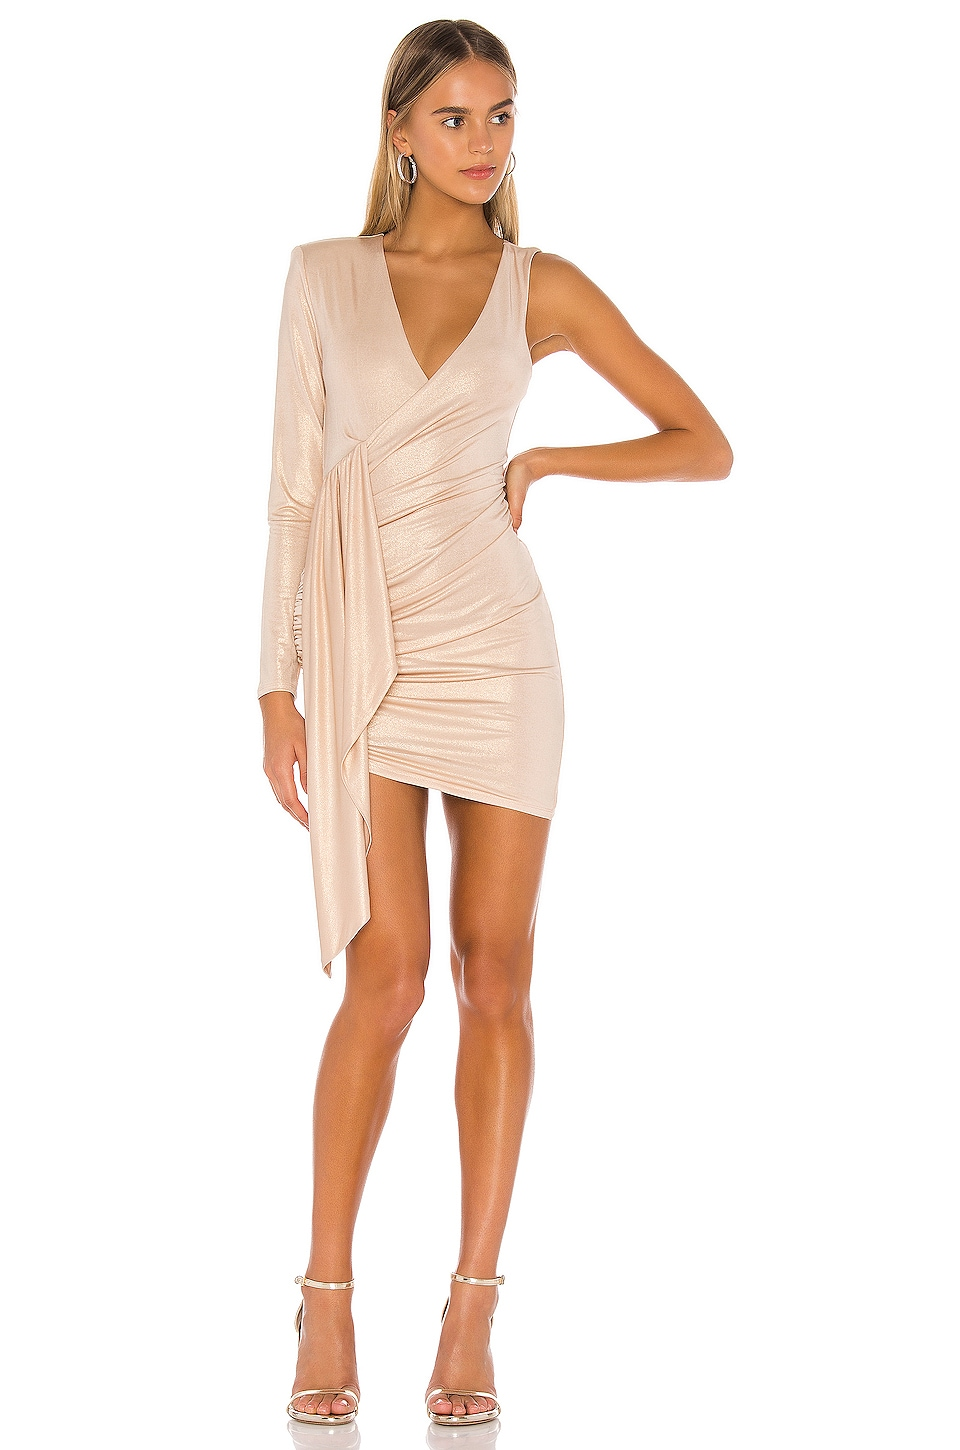 Michael Costello x REVOLVE Leona Mini Dress in Champagne